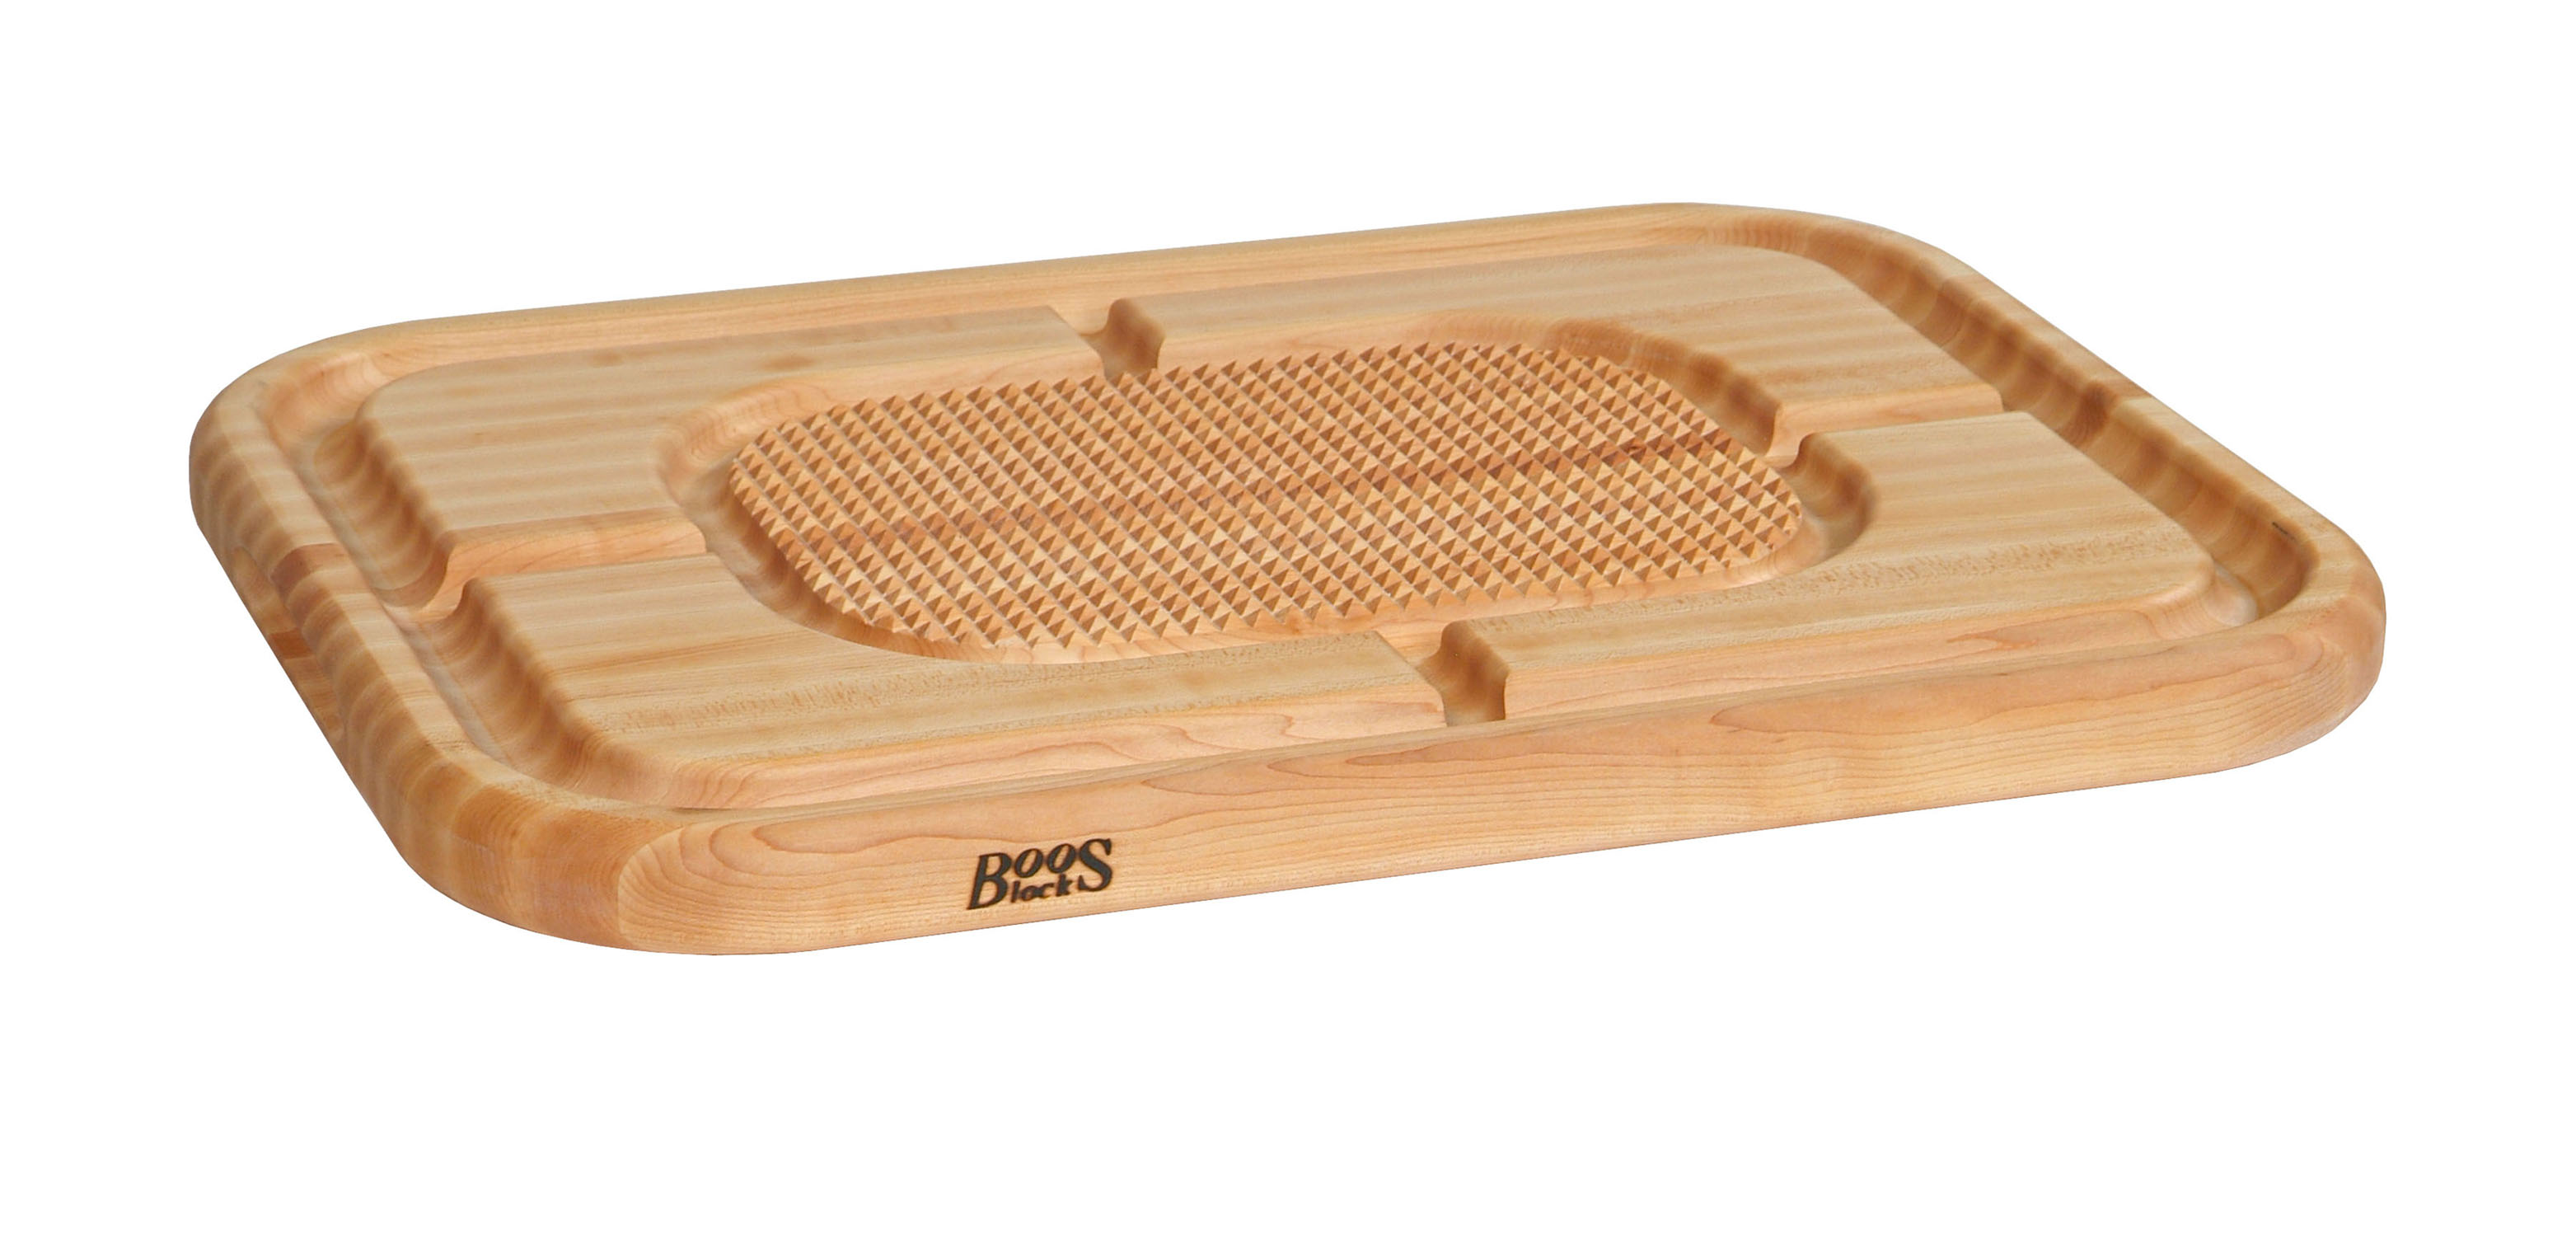 Boos Mayan Maple or Walnut Carving Board - Mini Pyramids, Grooved